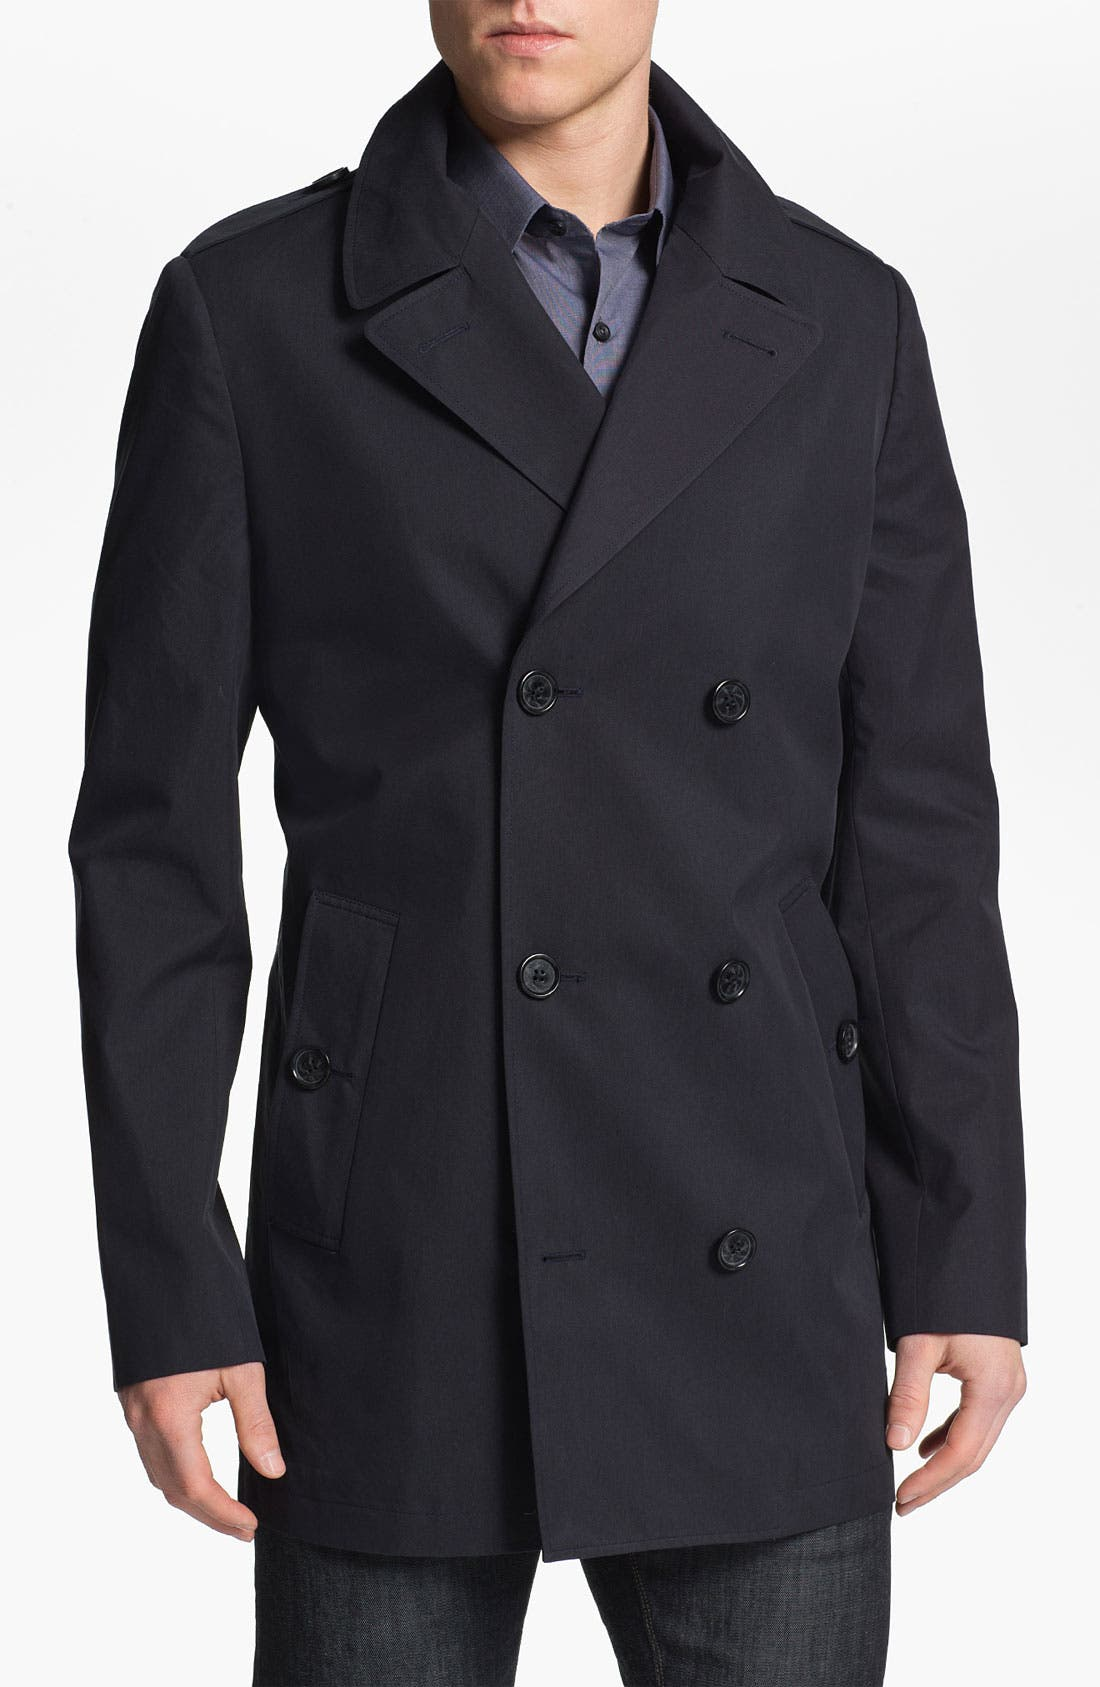 Main Image - Michael Kors Double Breasted Peacoat